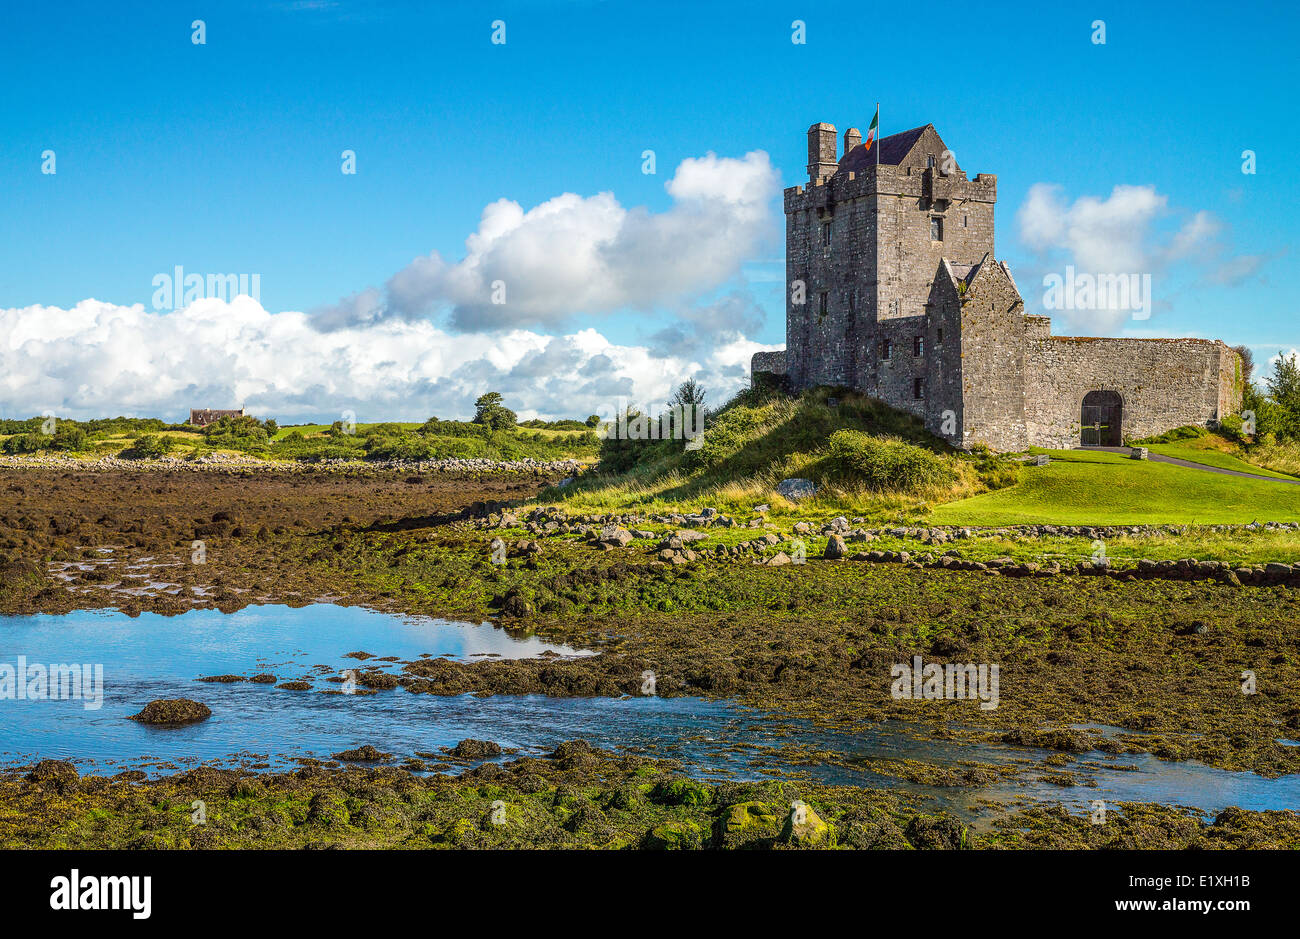 Ireland, Galway county, the Dunguaire castle - Stock Image